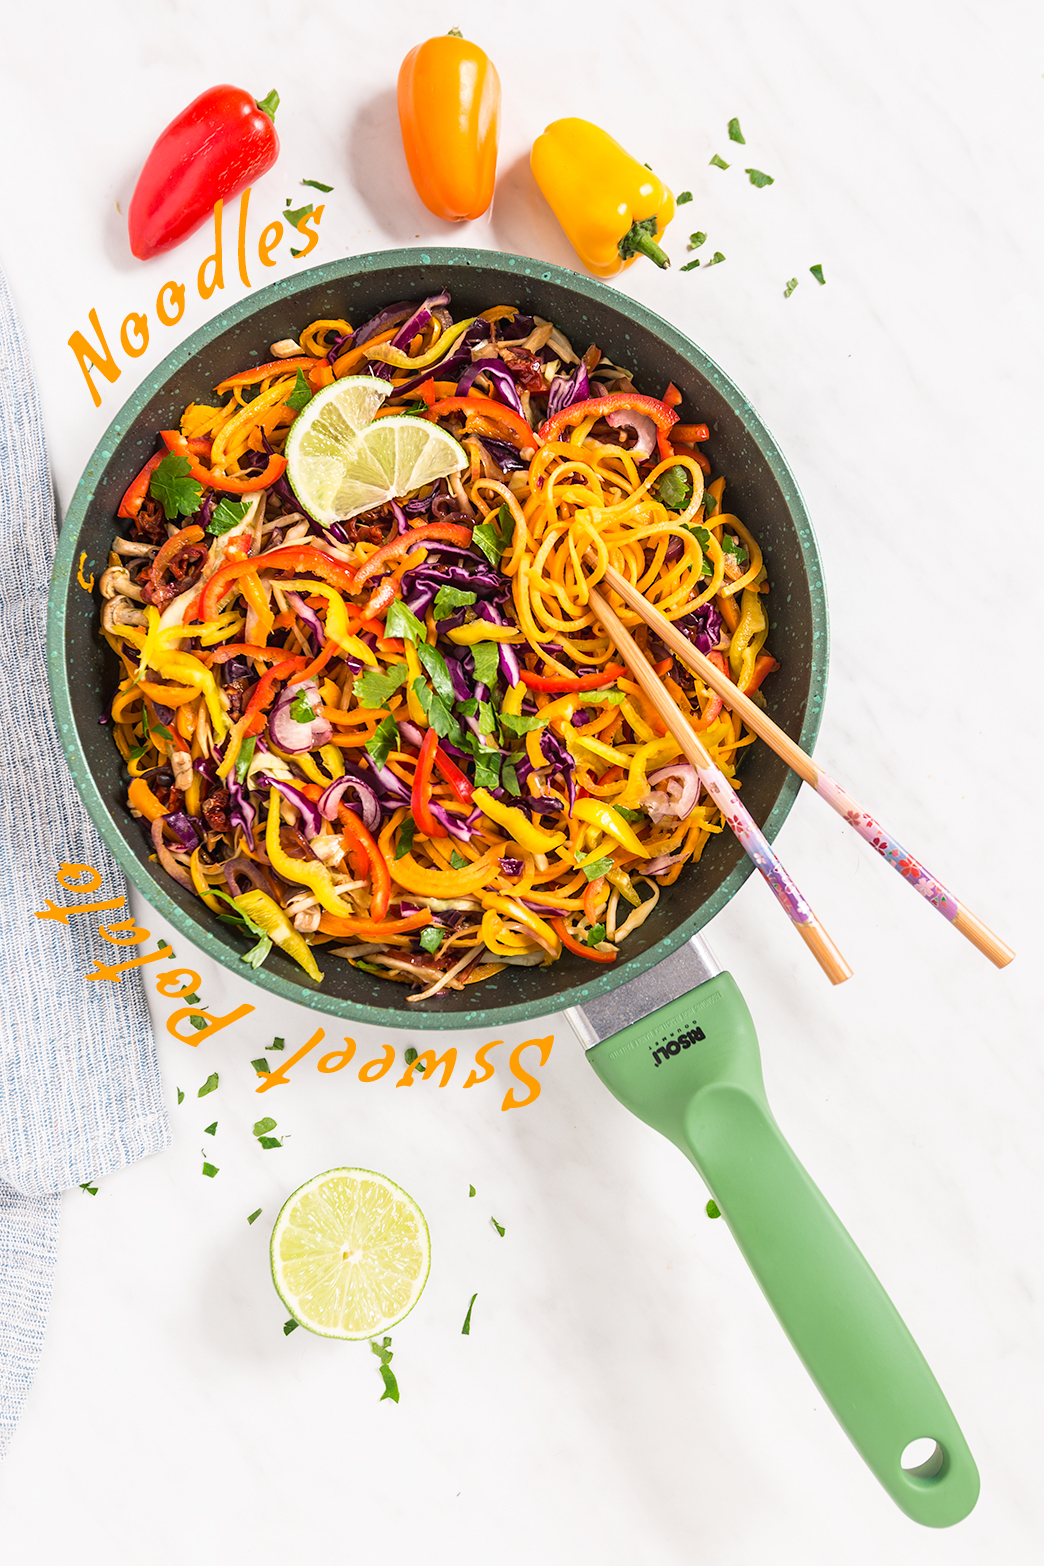 vegan sweet potatoes noodles stir-fry with mushrooms and bell pepper - Noodles di patate dolci e verdure saltate in padella vegan senza glutine con spiralizer